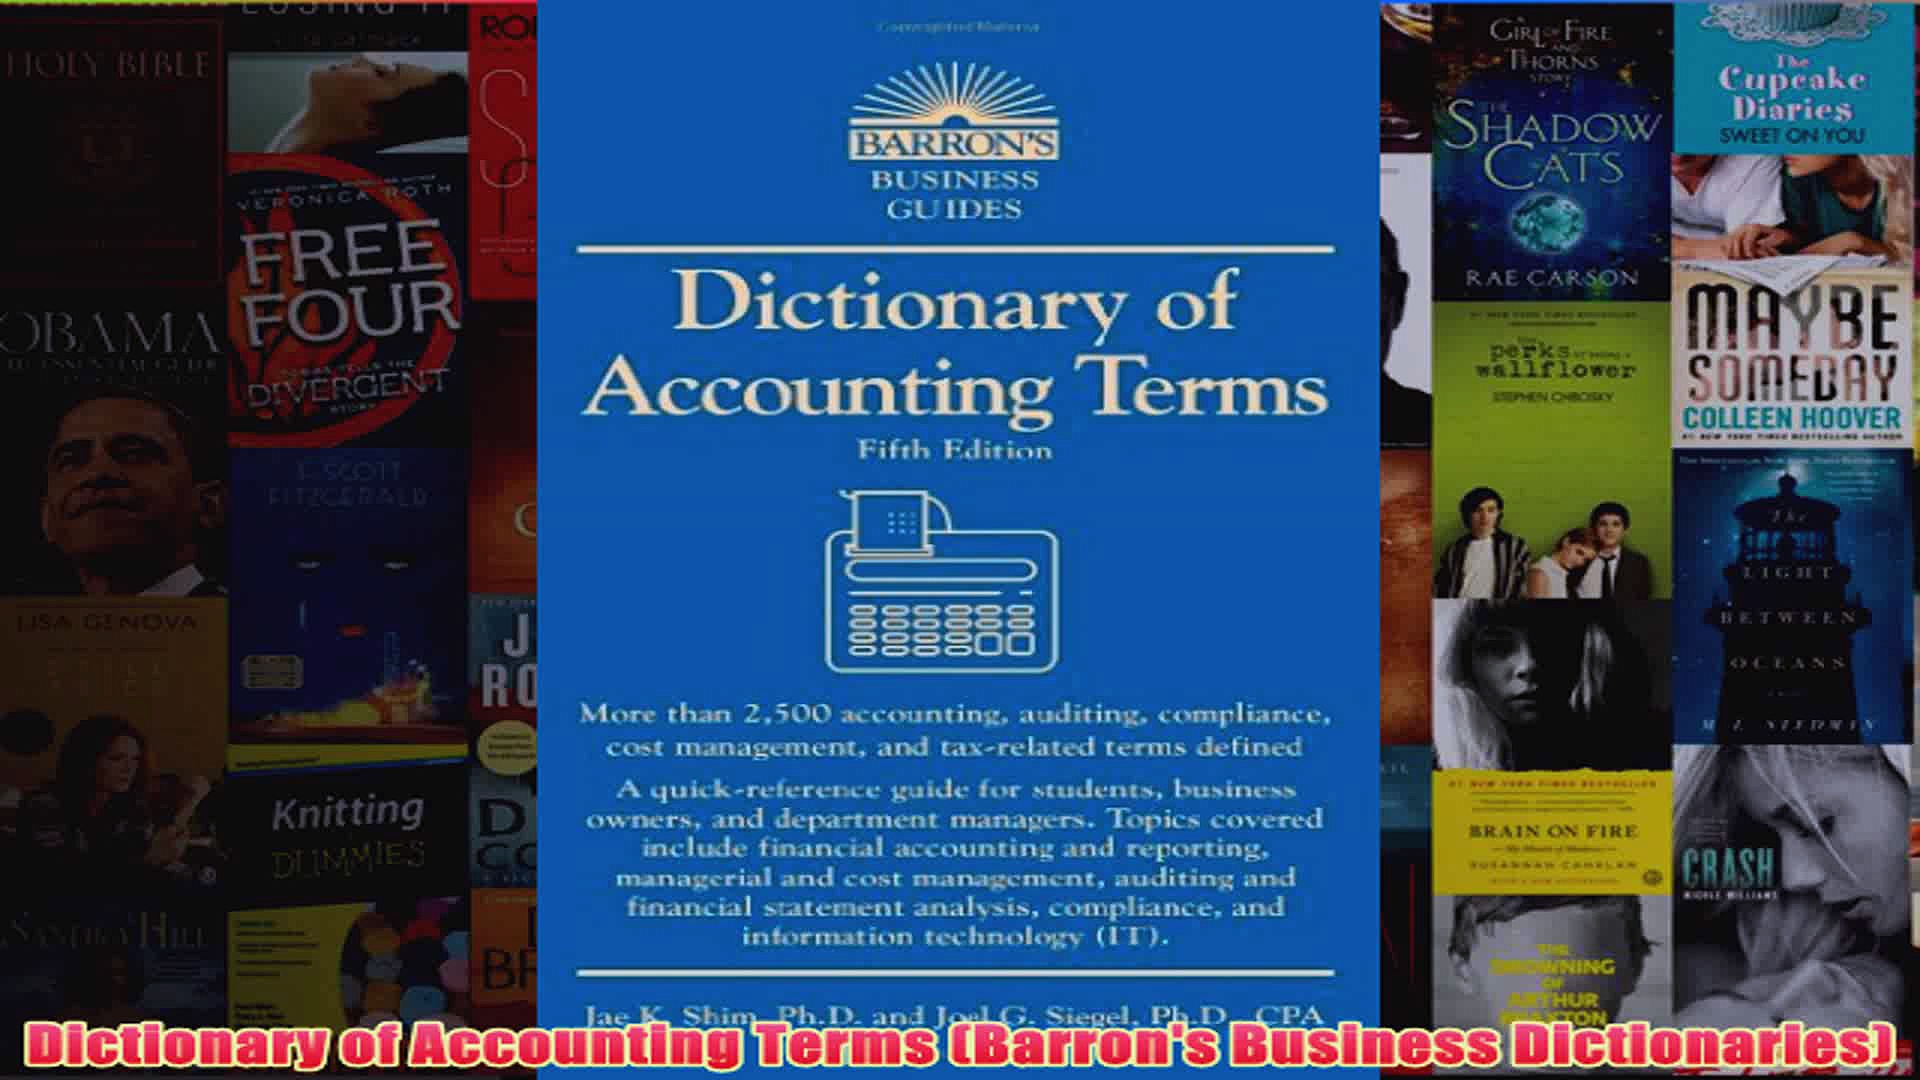 Dictionary of Accounting Terms Barrons Business Dictionaries